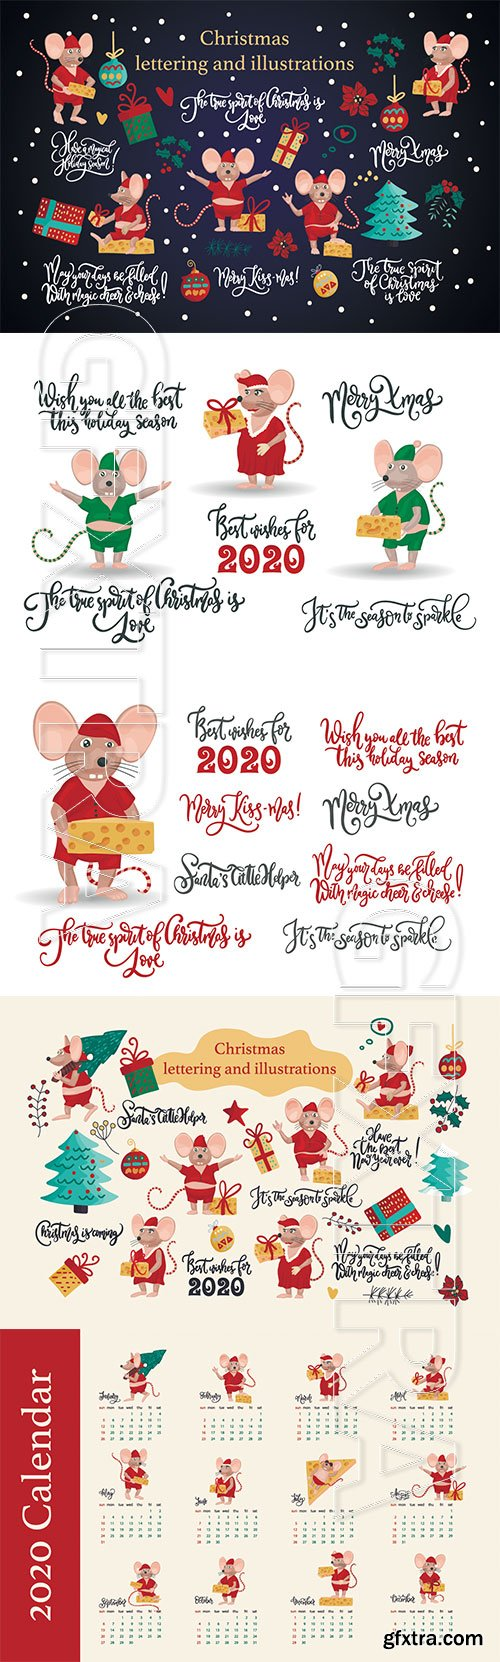 hristmas greeting illustrations with cute mice, decorations and lettering quotes